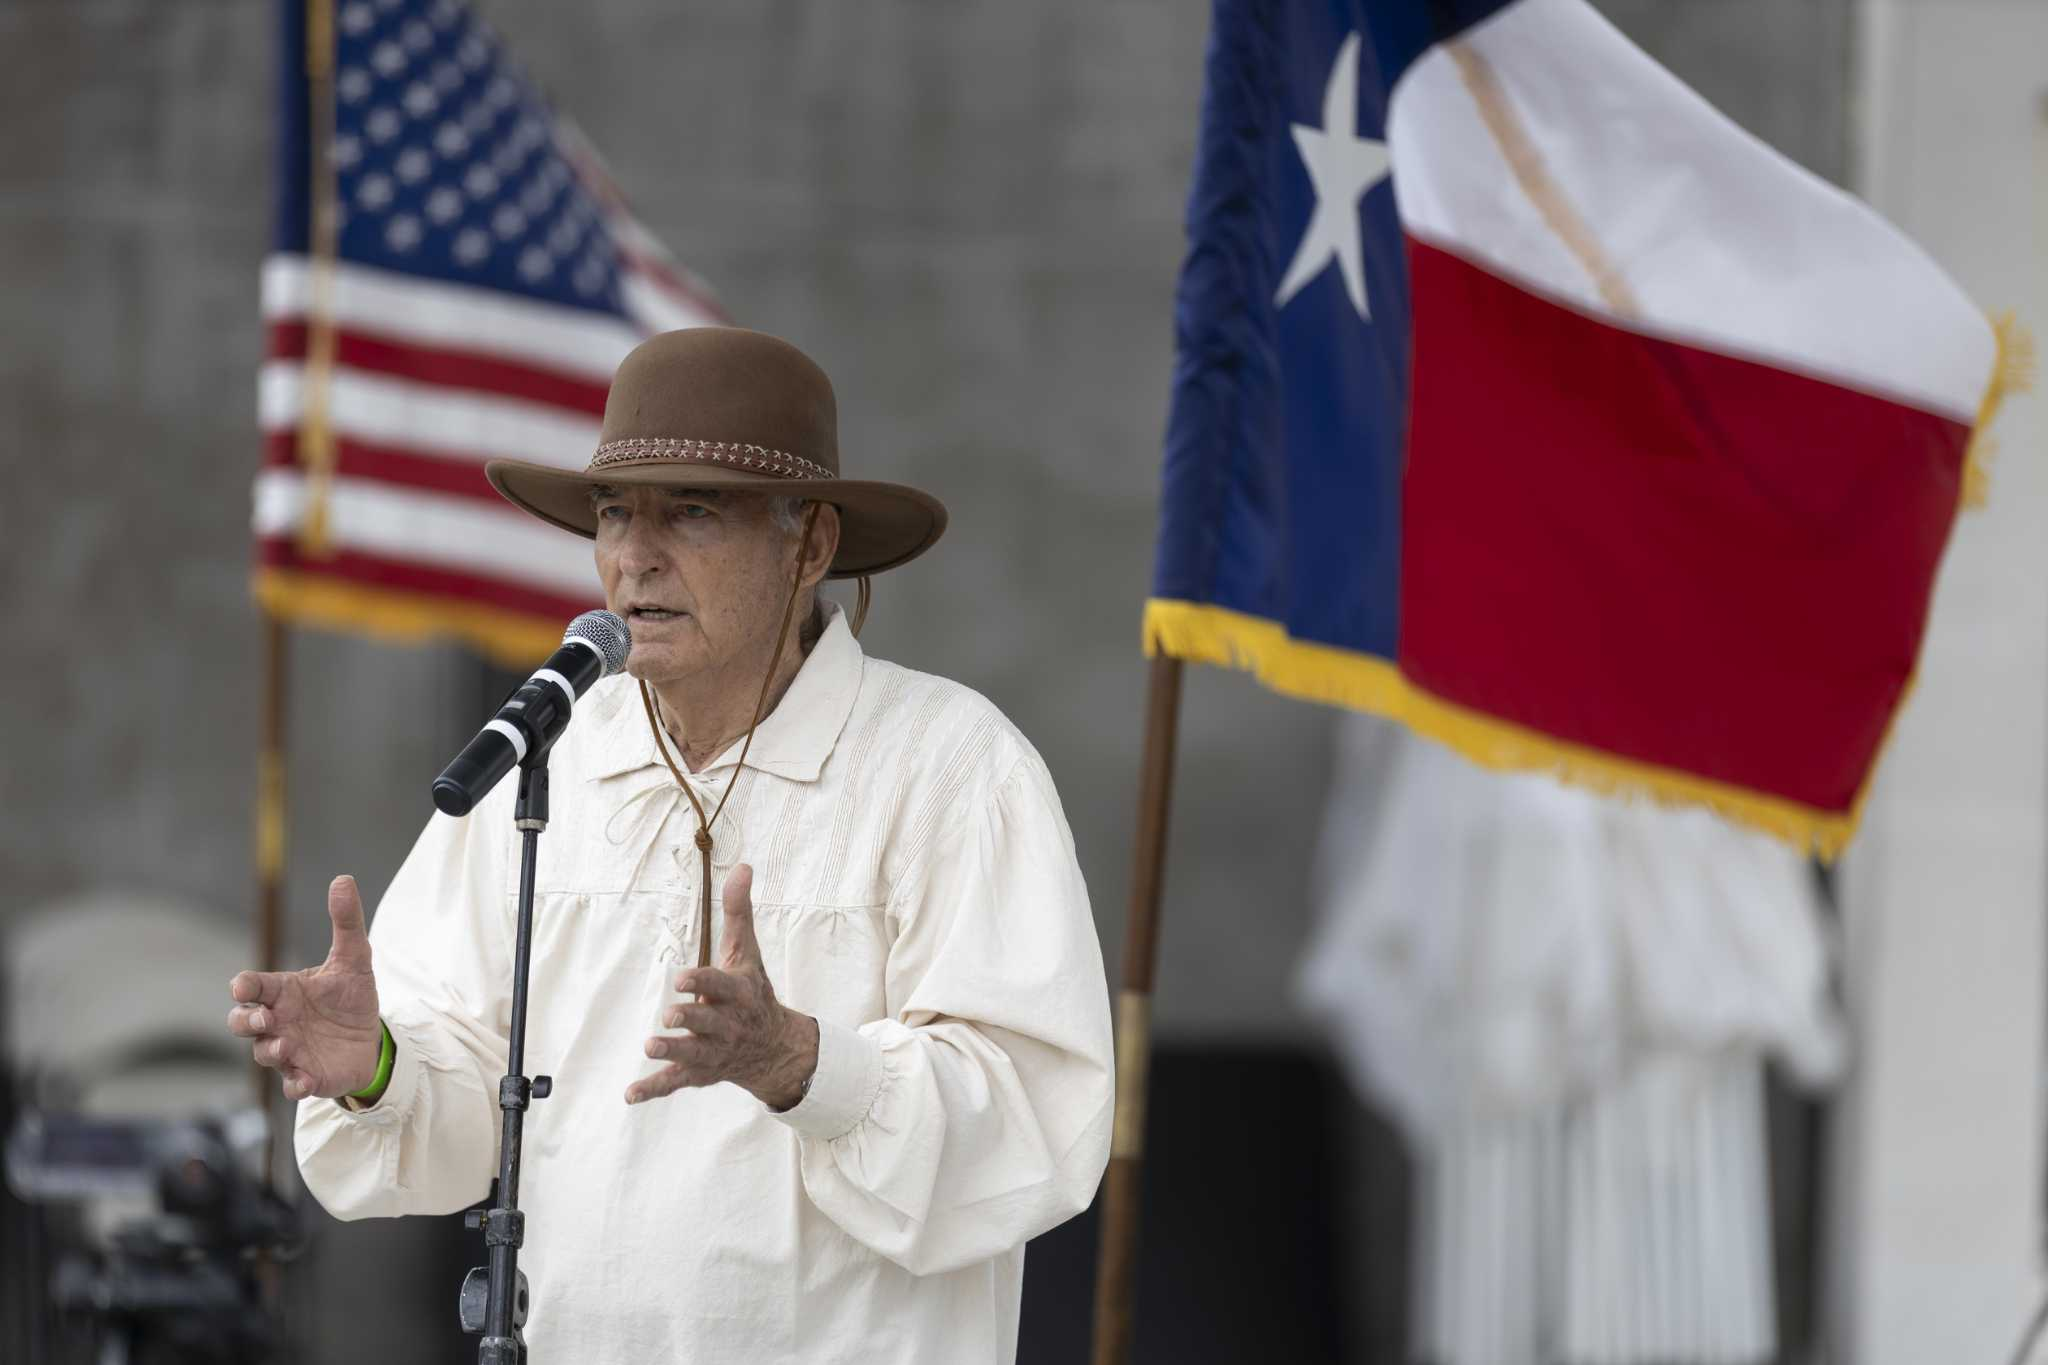 Conroe event celebrates Texas Independence Day